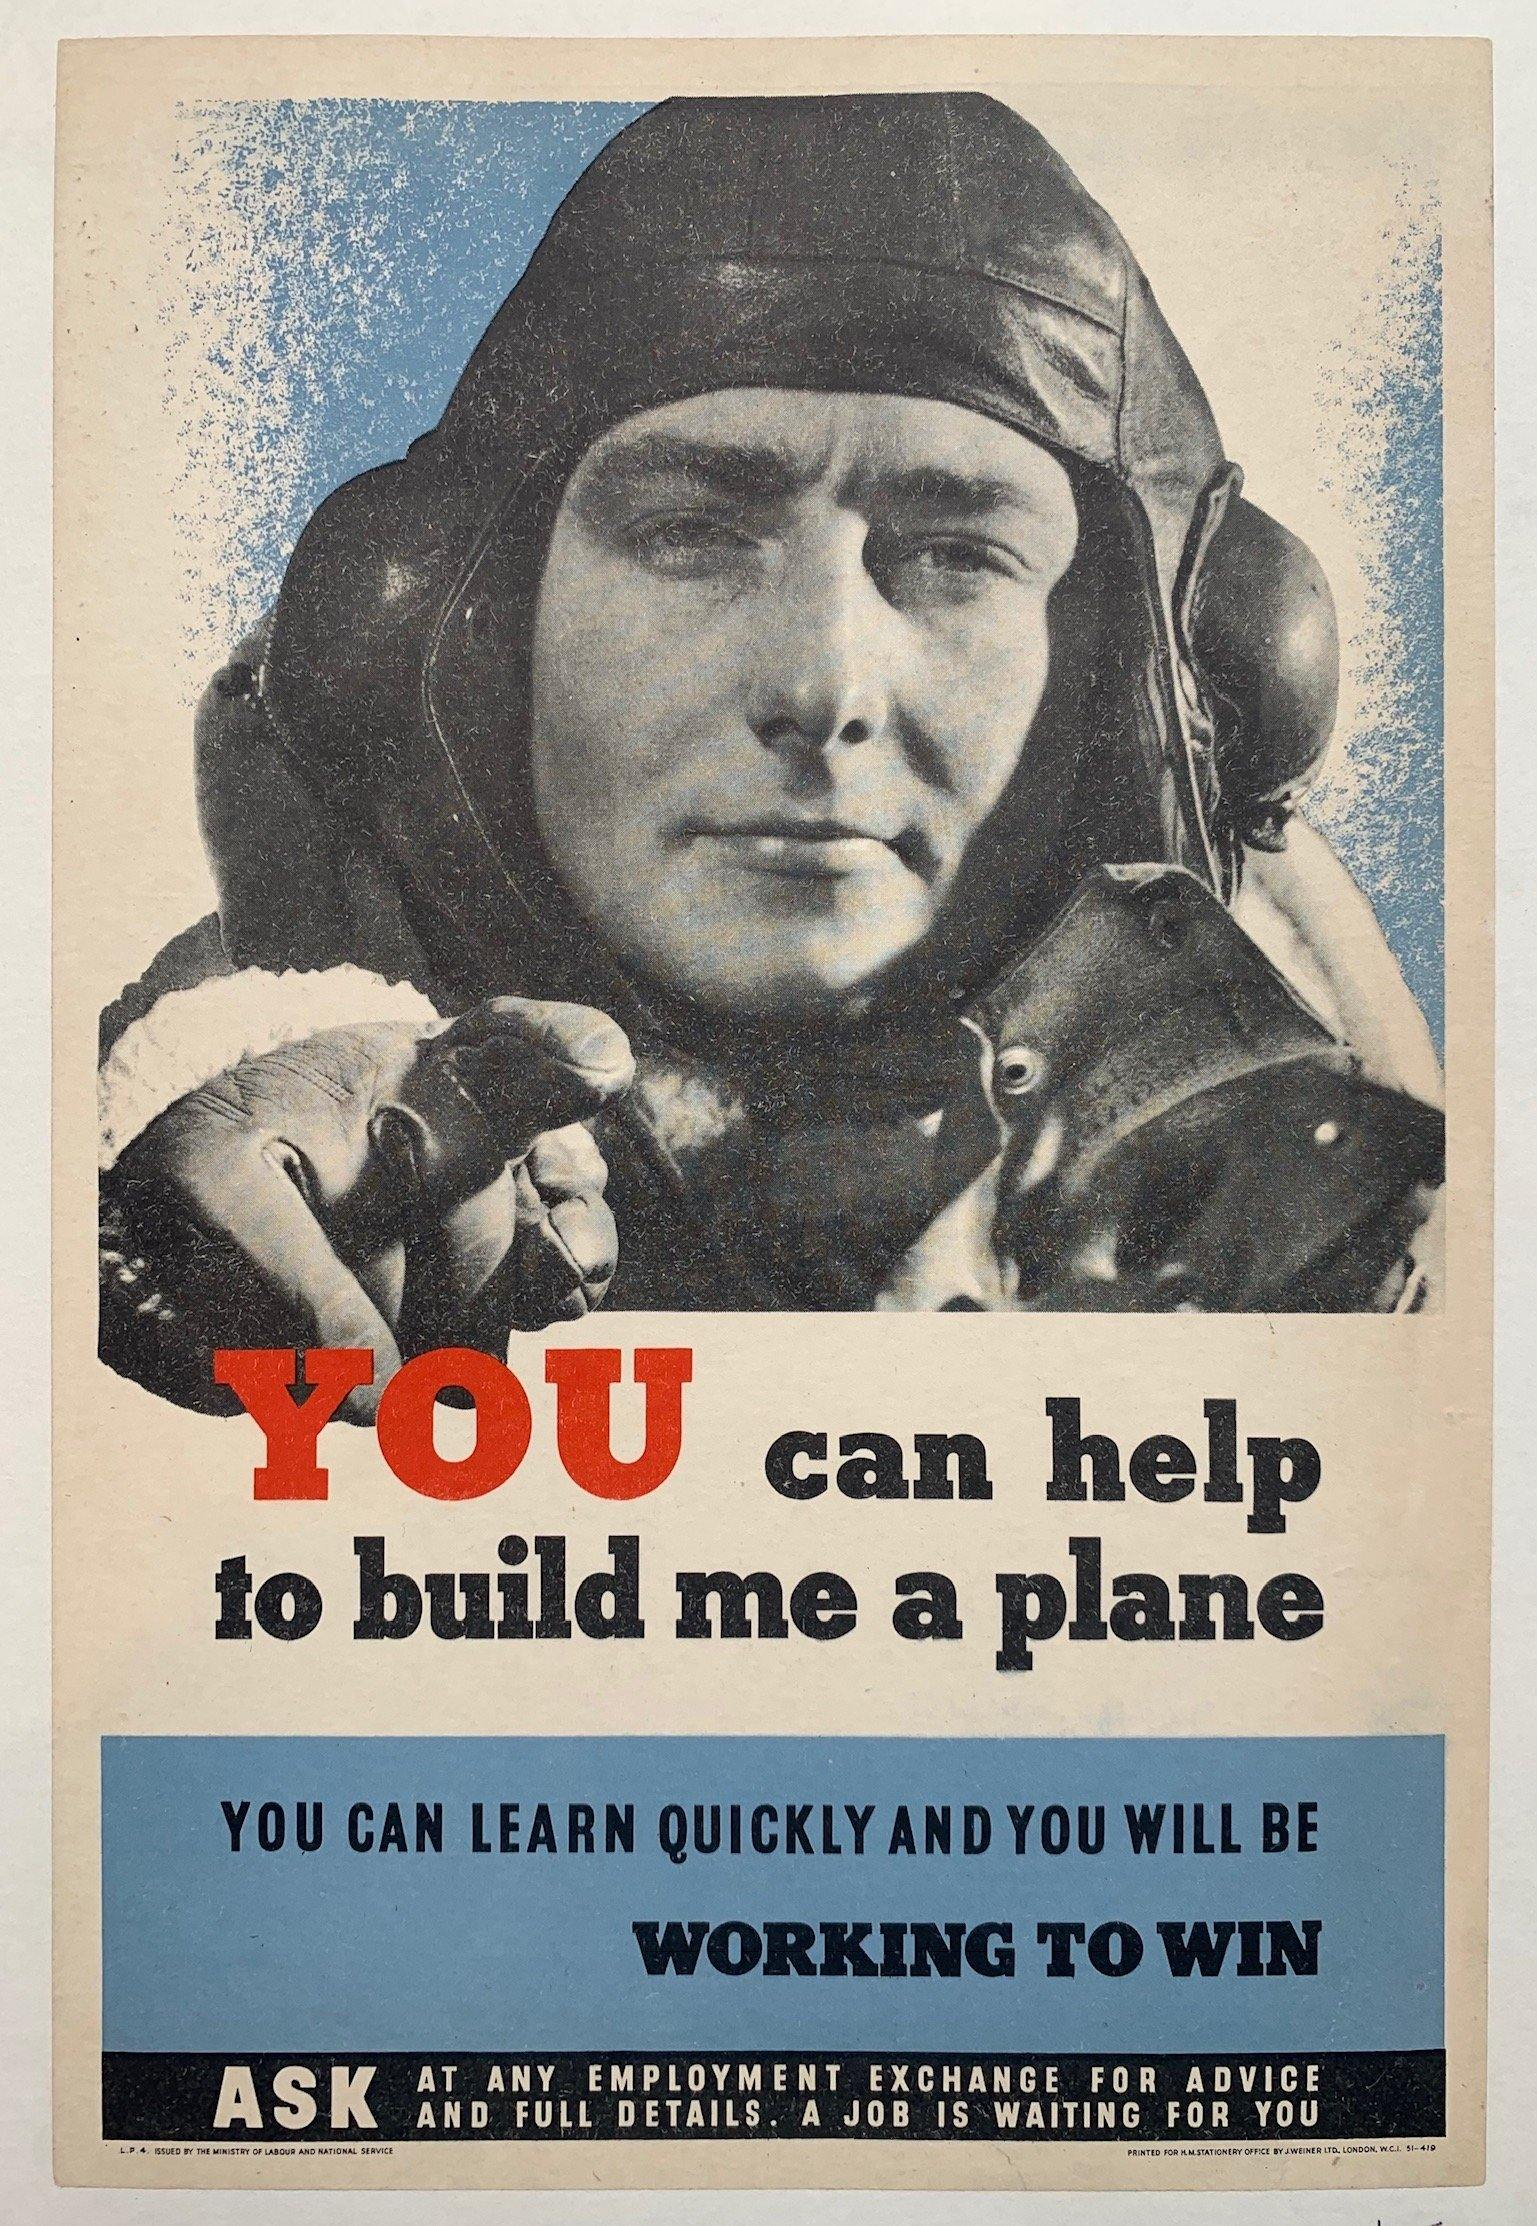 YOU can help to build me a plane. You can learn quickly and you will be working to win.